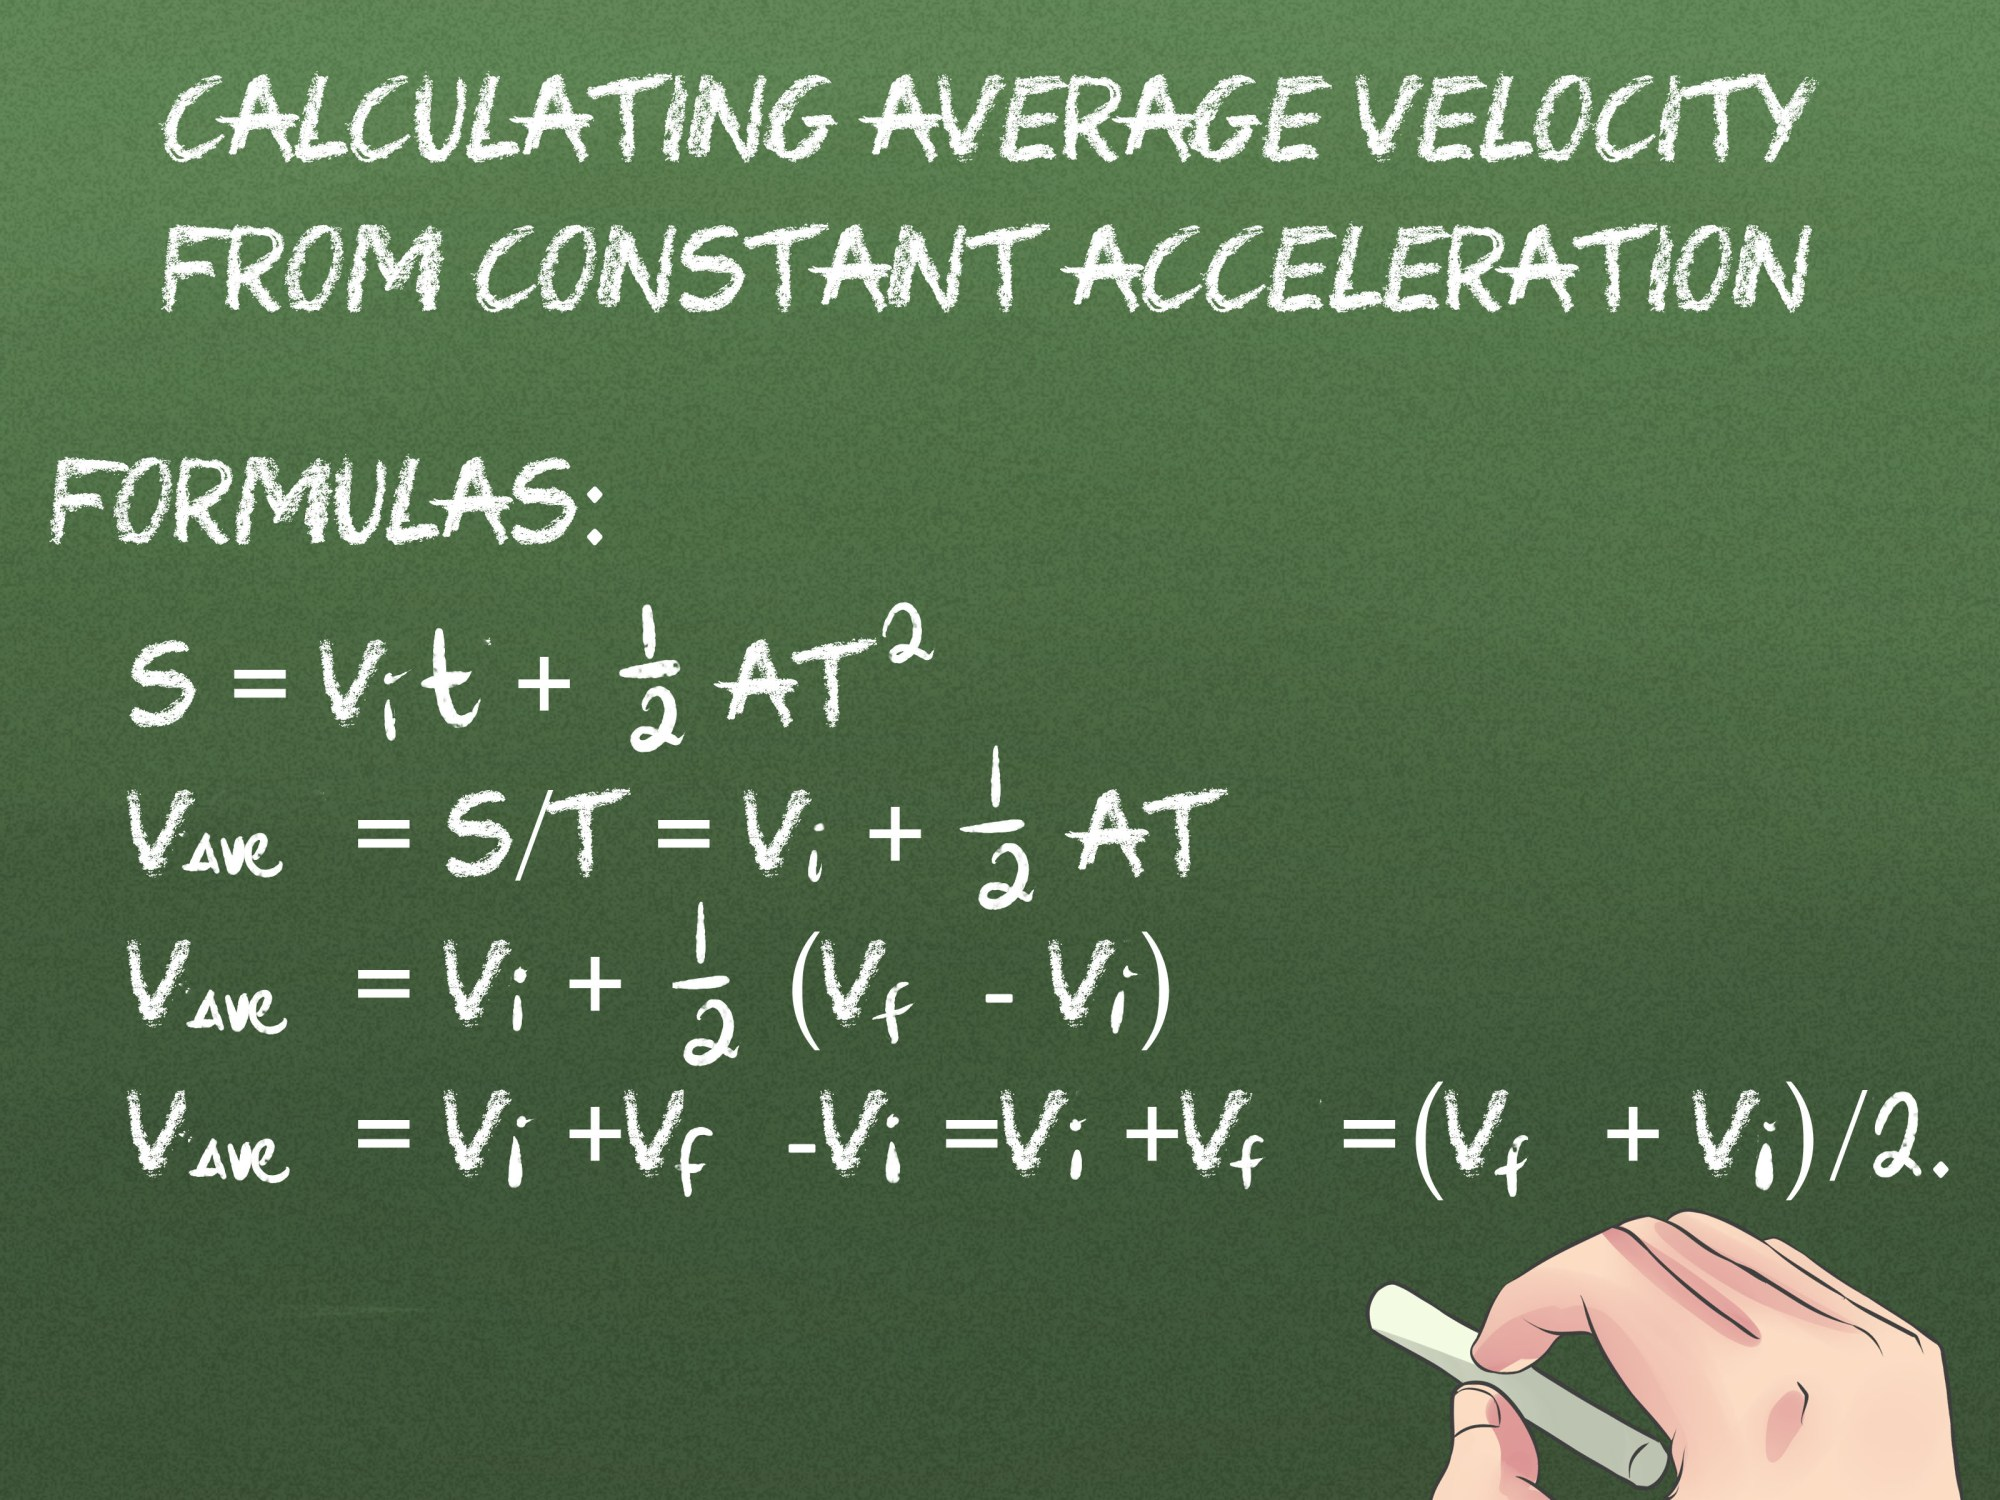 hight resolution of Calculate Velocity Worksheet   Printable Worksheets and Activities for  Teachers